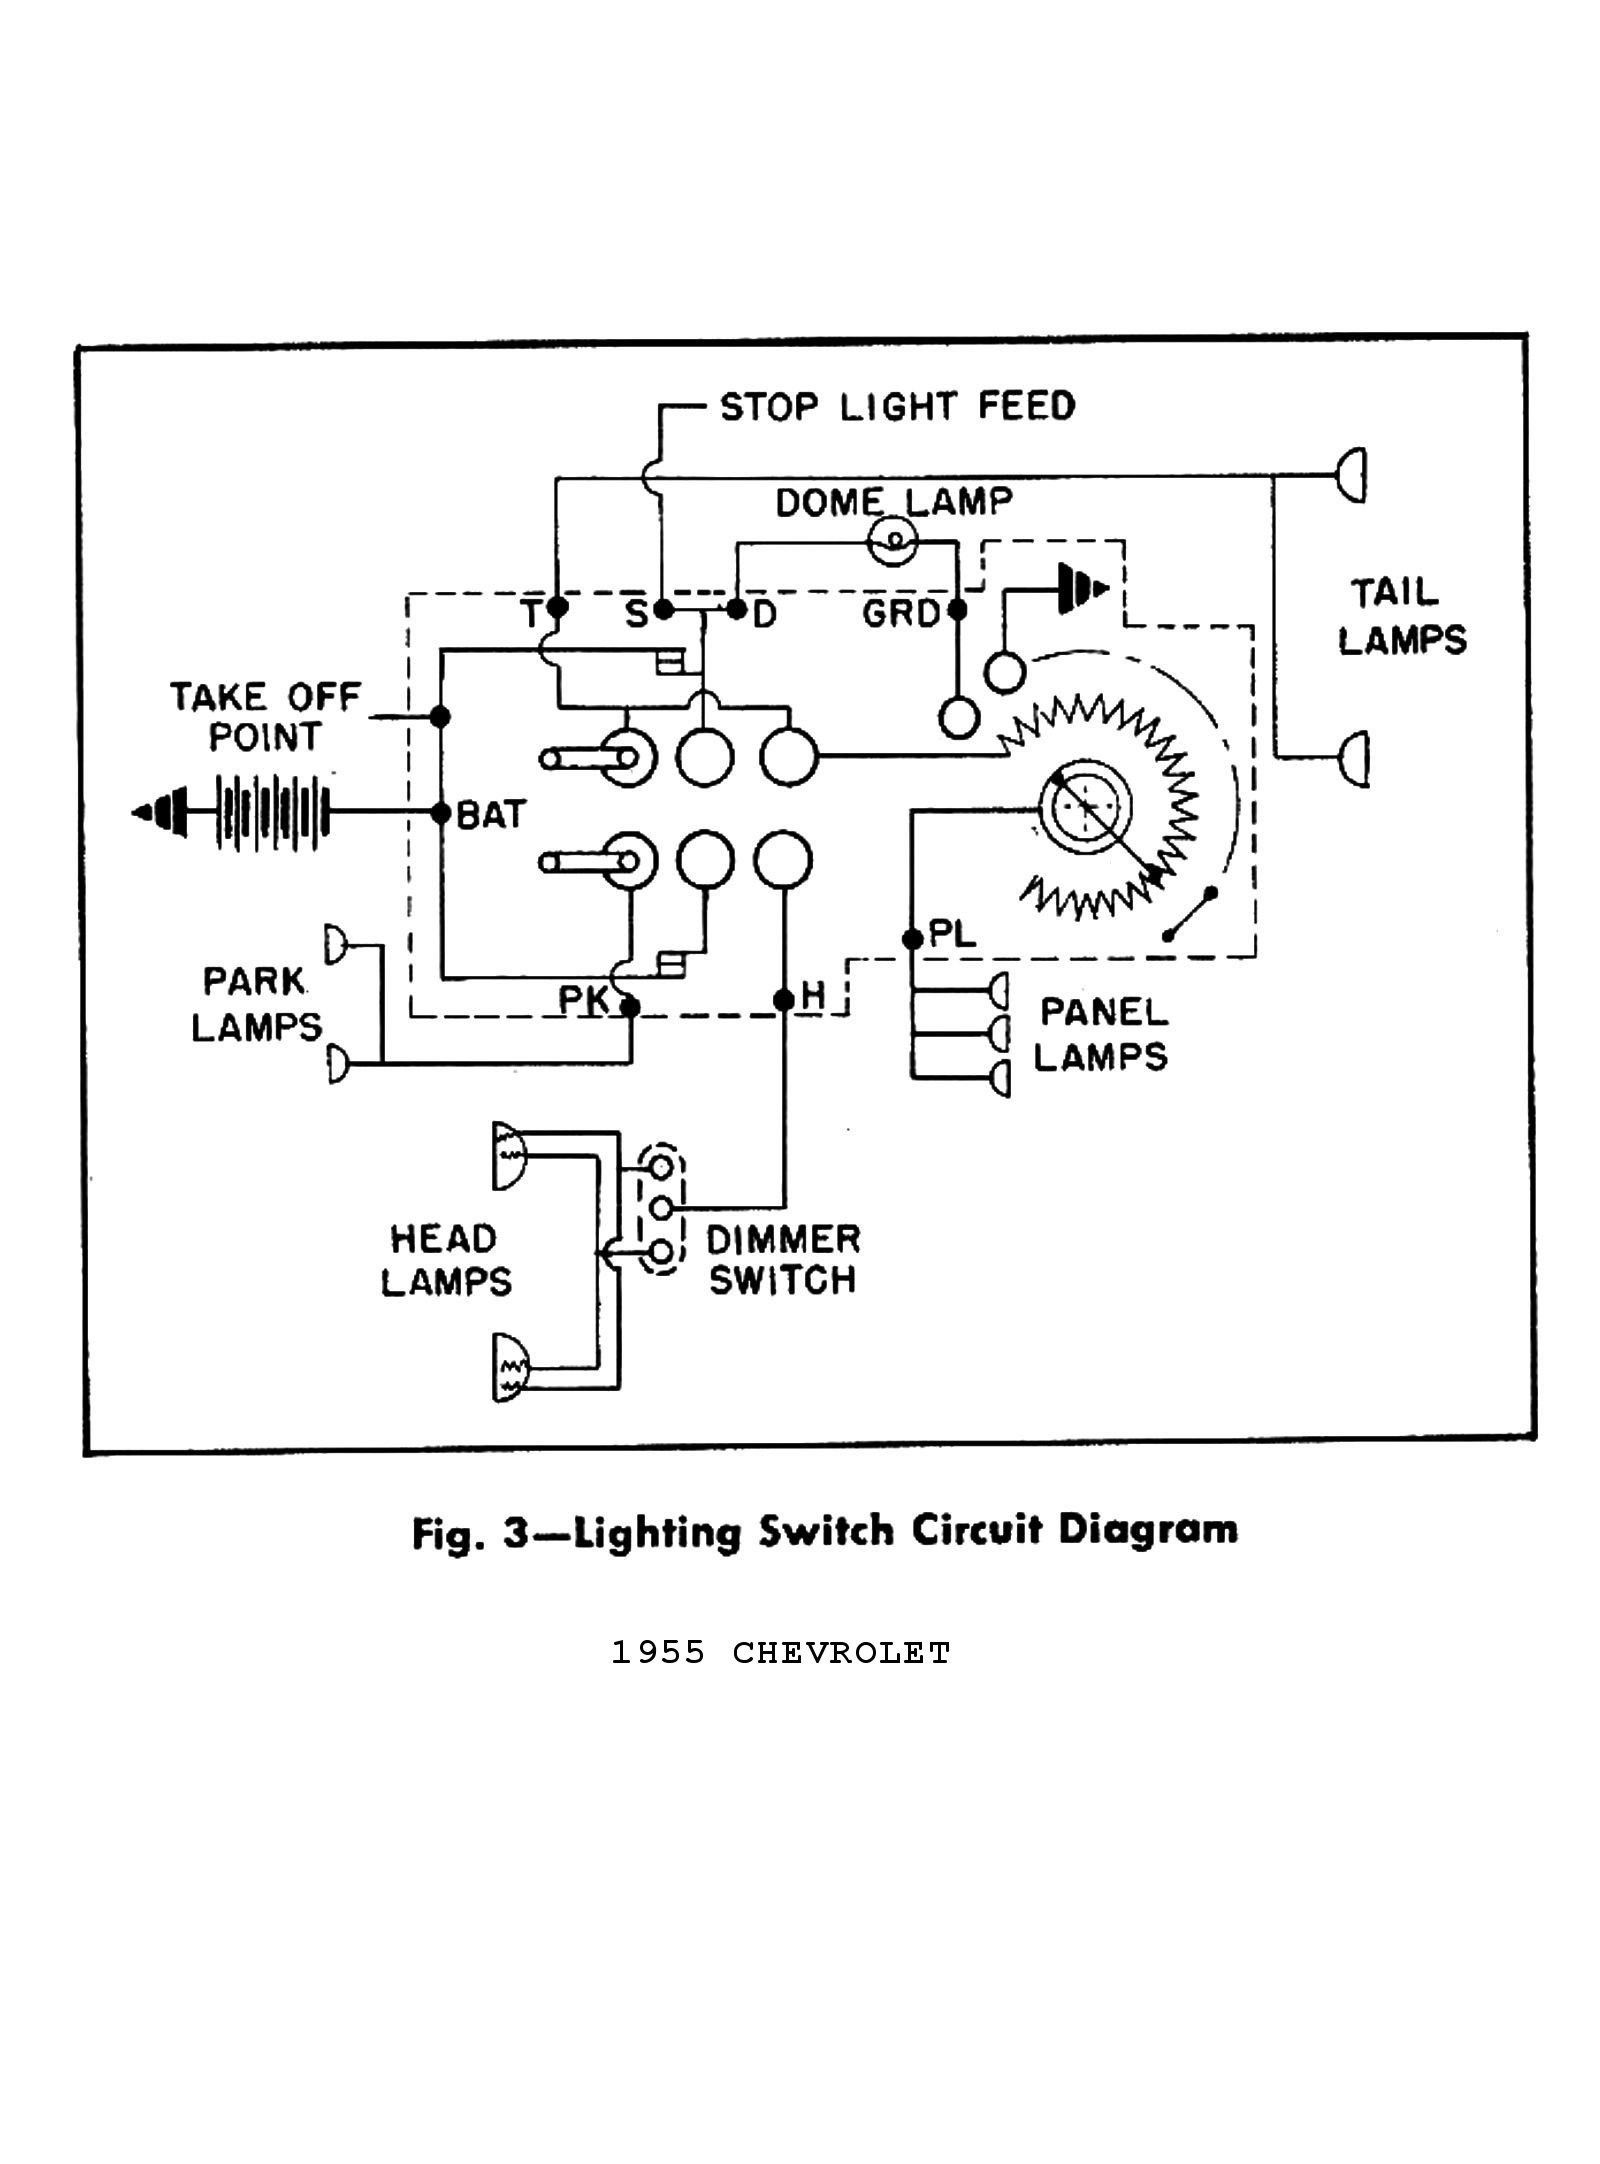 New Car Dimmer Switch Wiring Diagram Diagram Diagramtemplate Diagramsample Sistema Electrico Electrica Motor Ford